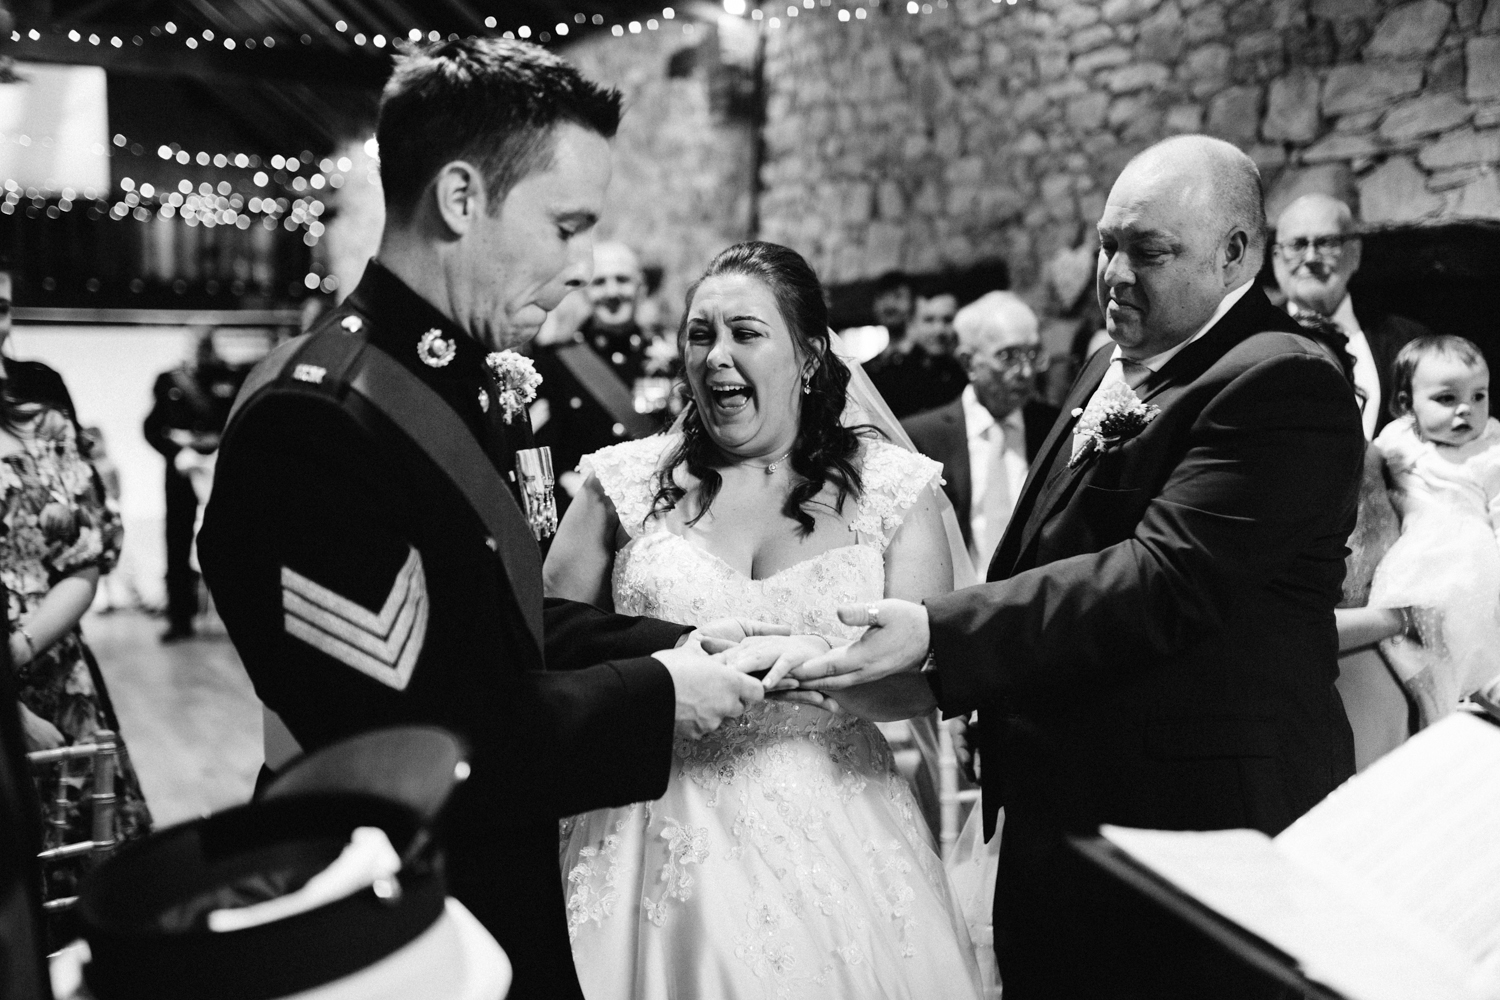 brother giving bride away